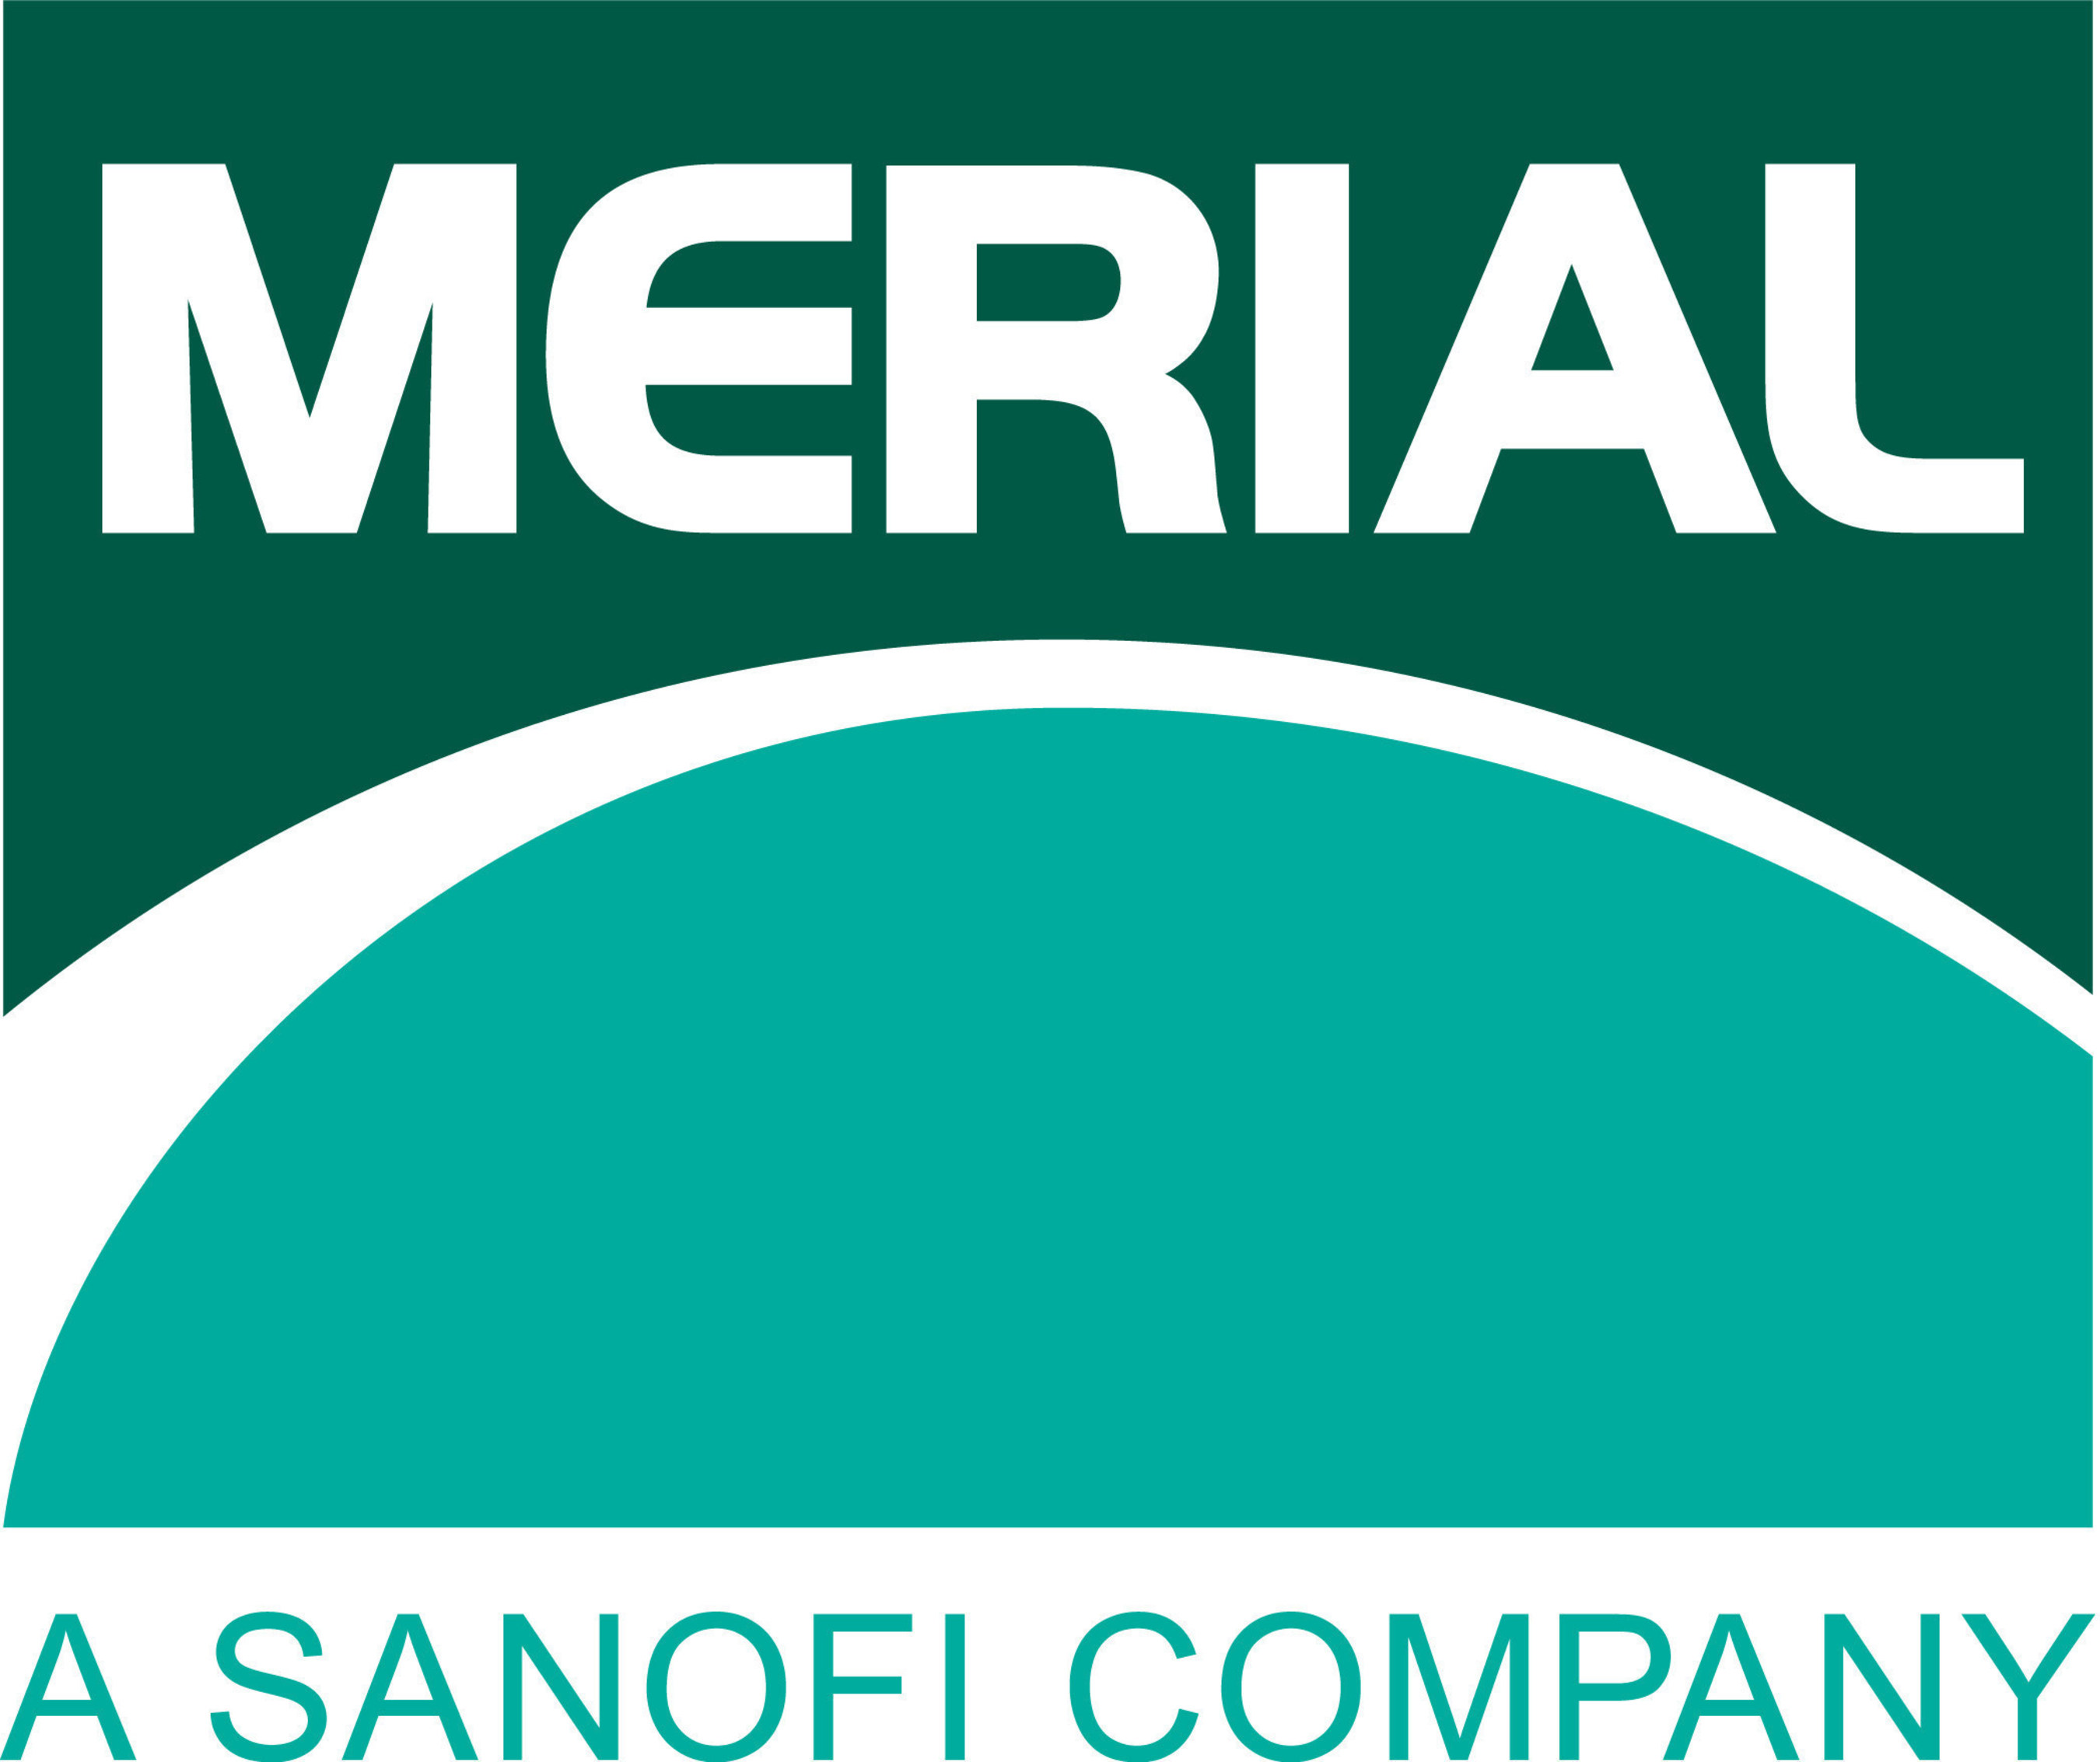 Merial is a world-leading, innovation-driven animal health company, providing a comprehensive range of products to enhance the health and well-being of a wide range of animals. Merial is a Sanofi company. For more information, please see www.merial.com